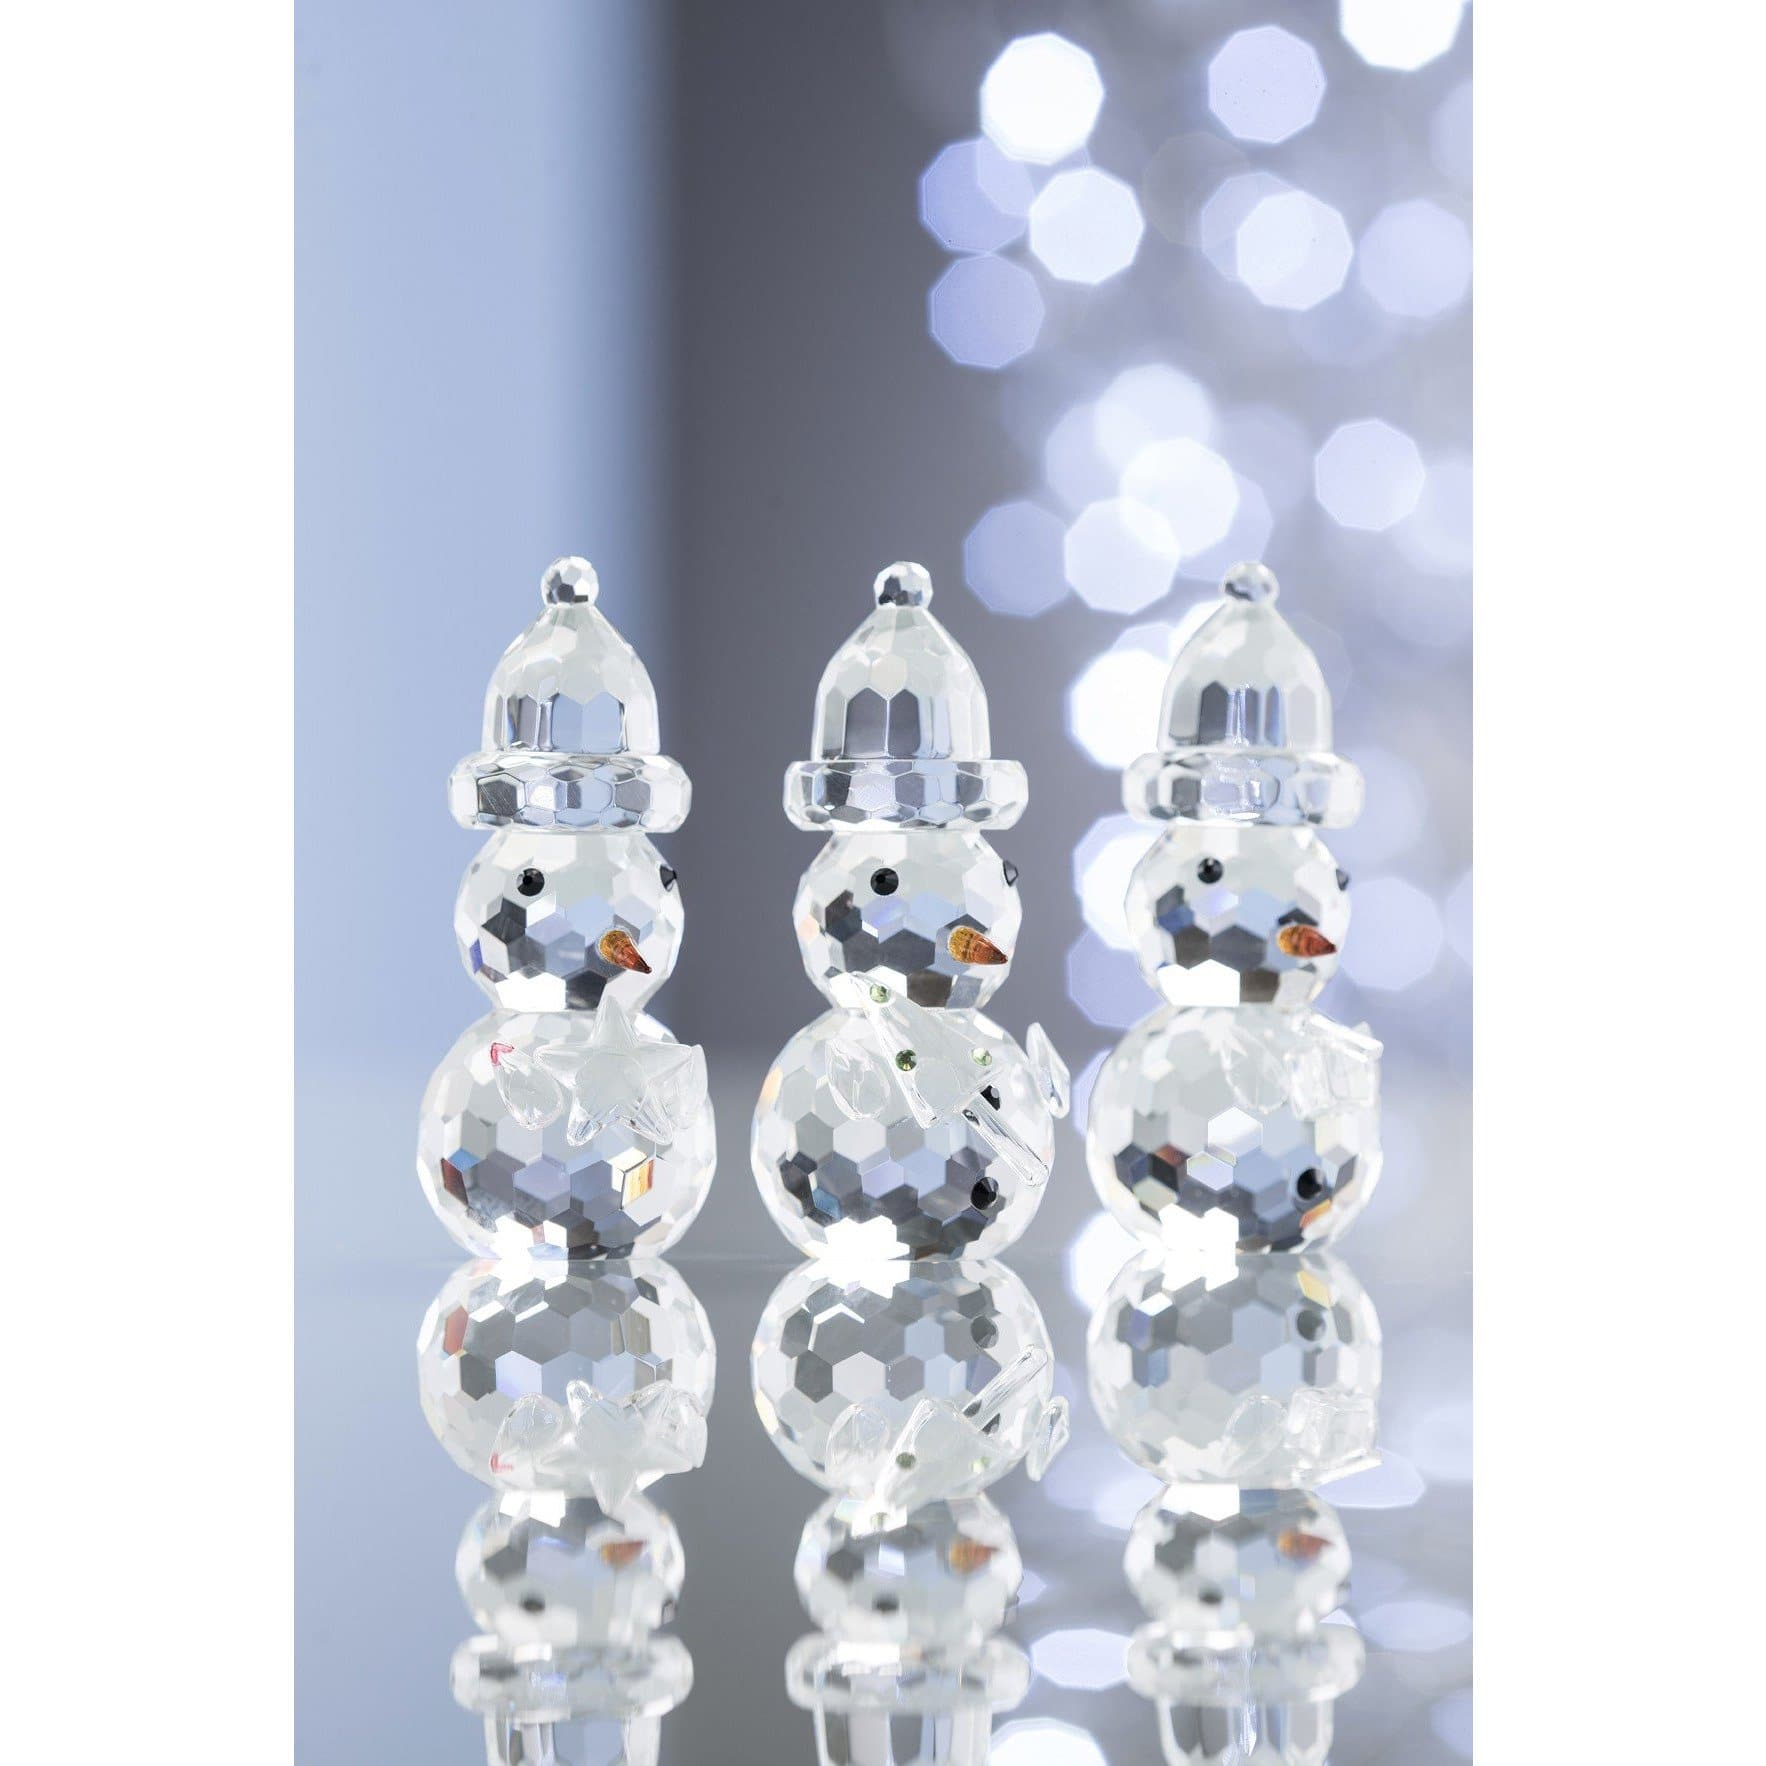 *Out of Stock* Gem Snowman Ornaments (3 pack) GGM11 - Galway Irish Crystal